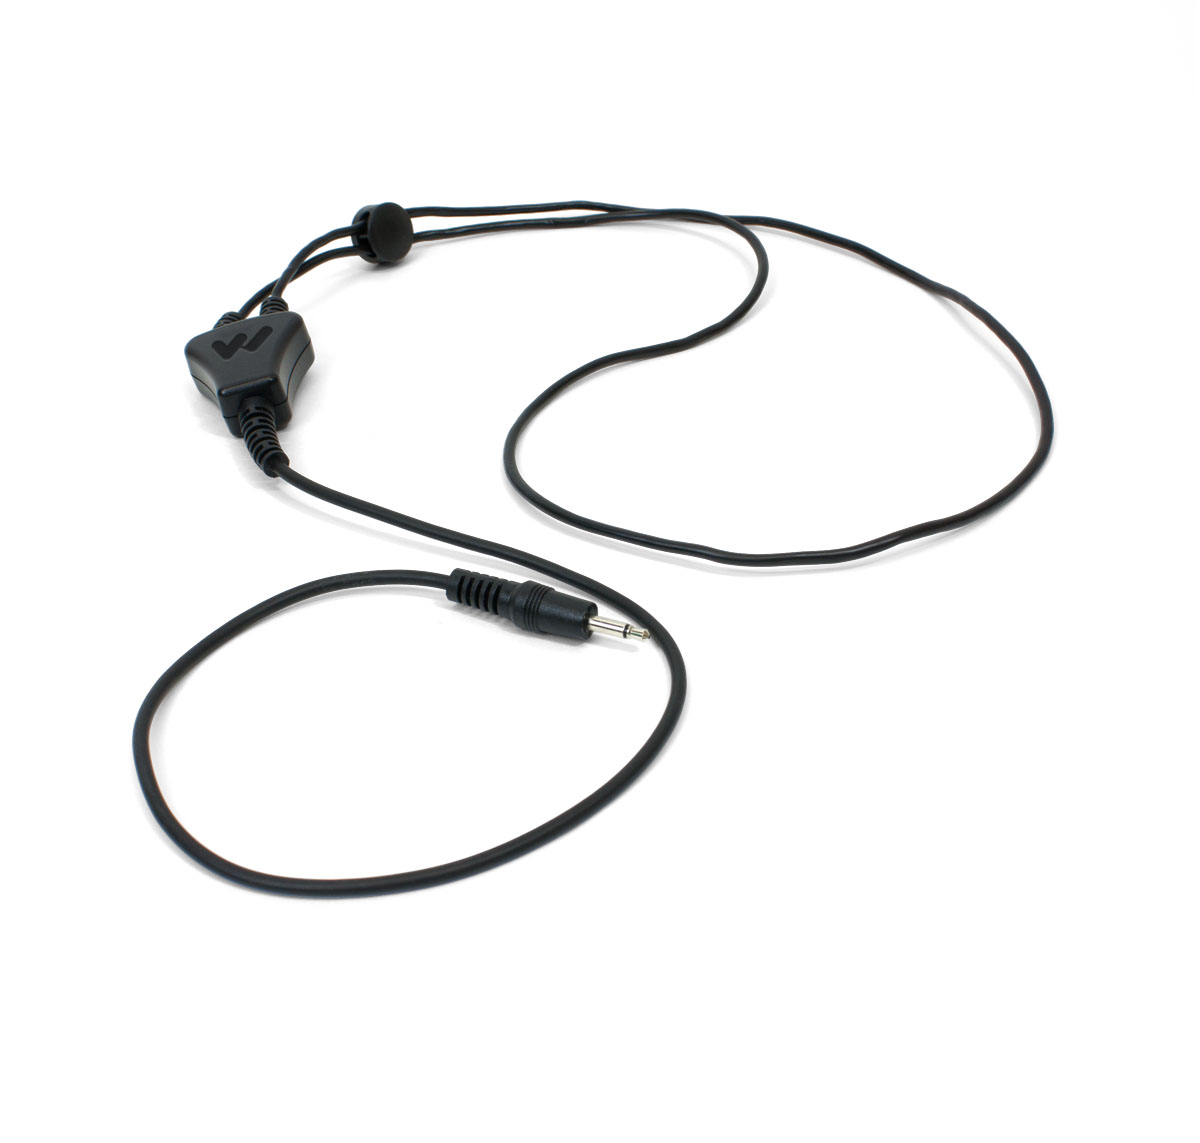 williams sound nkl 001 18 u0026quot  neckloop with 3 5mm plug